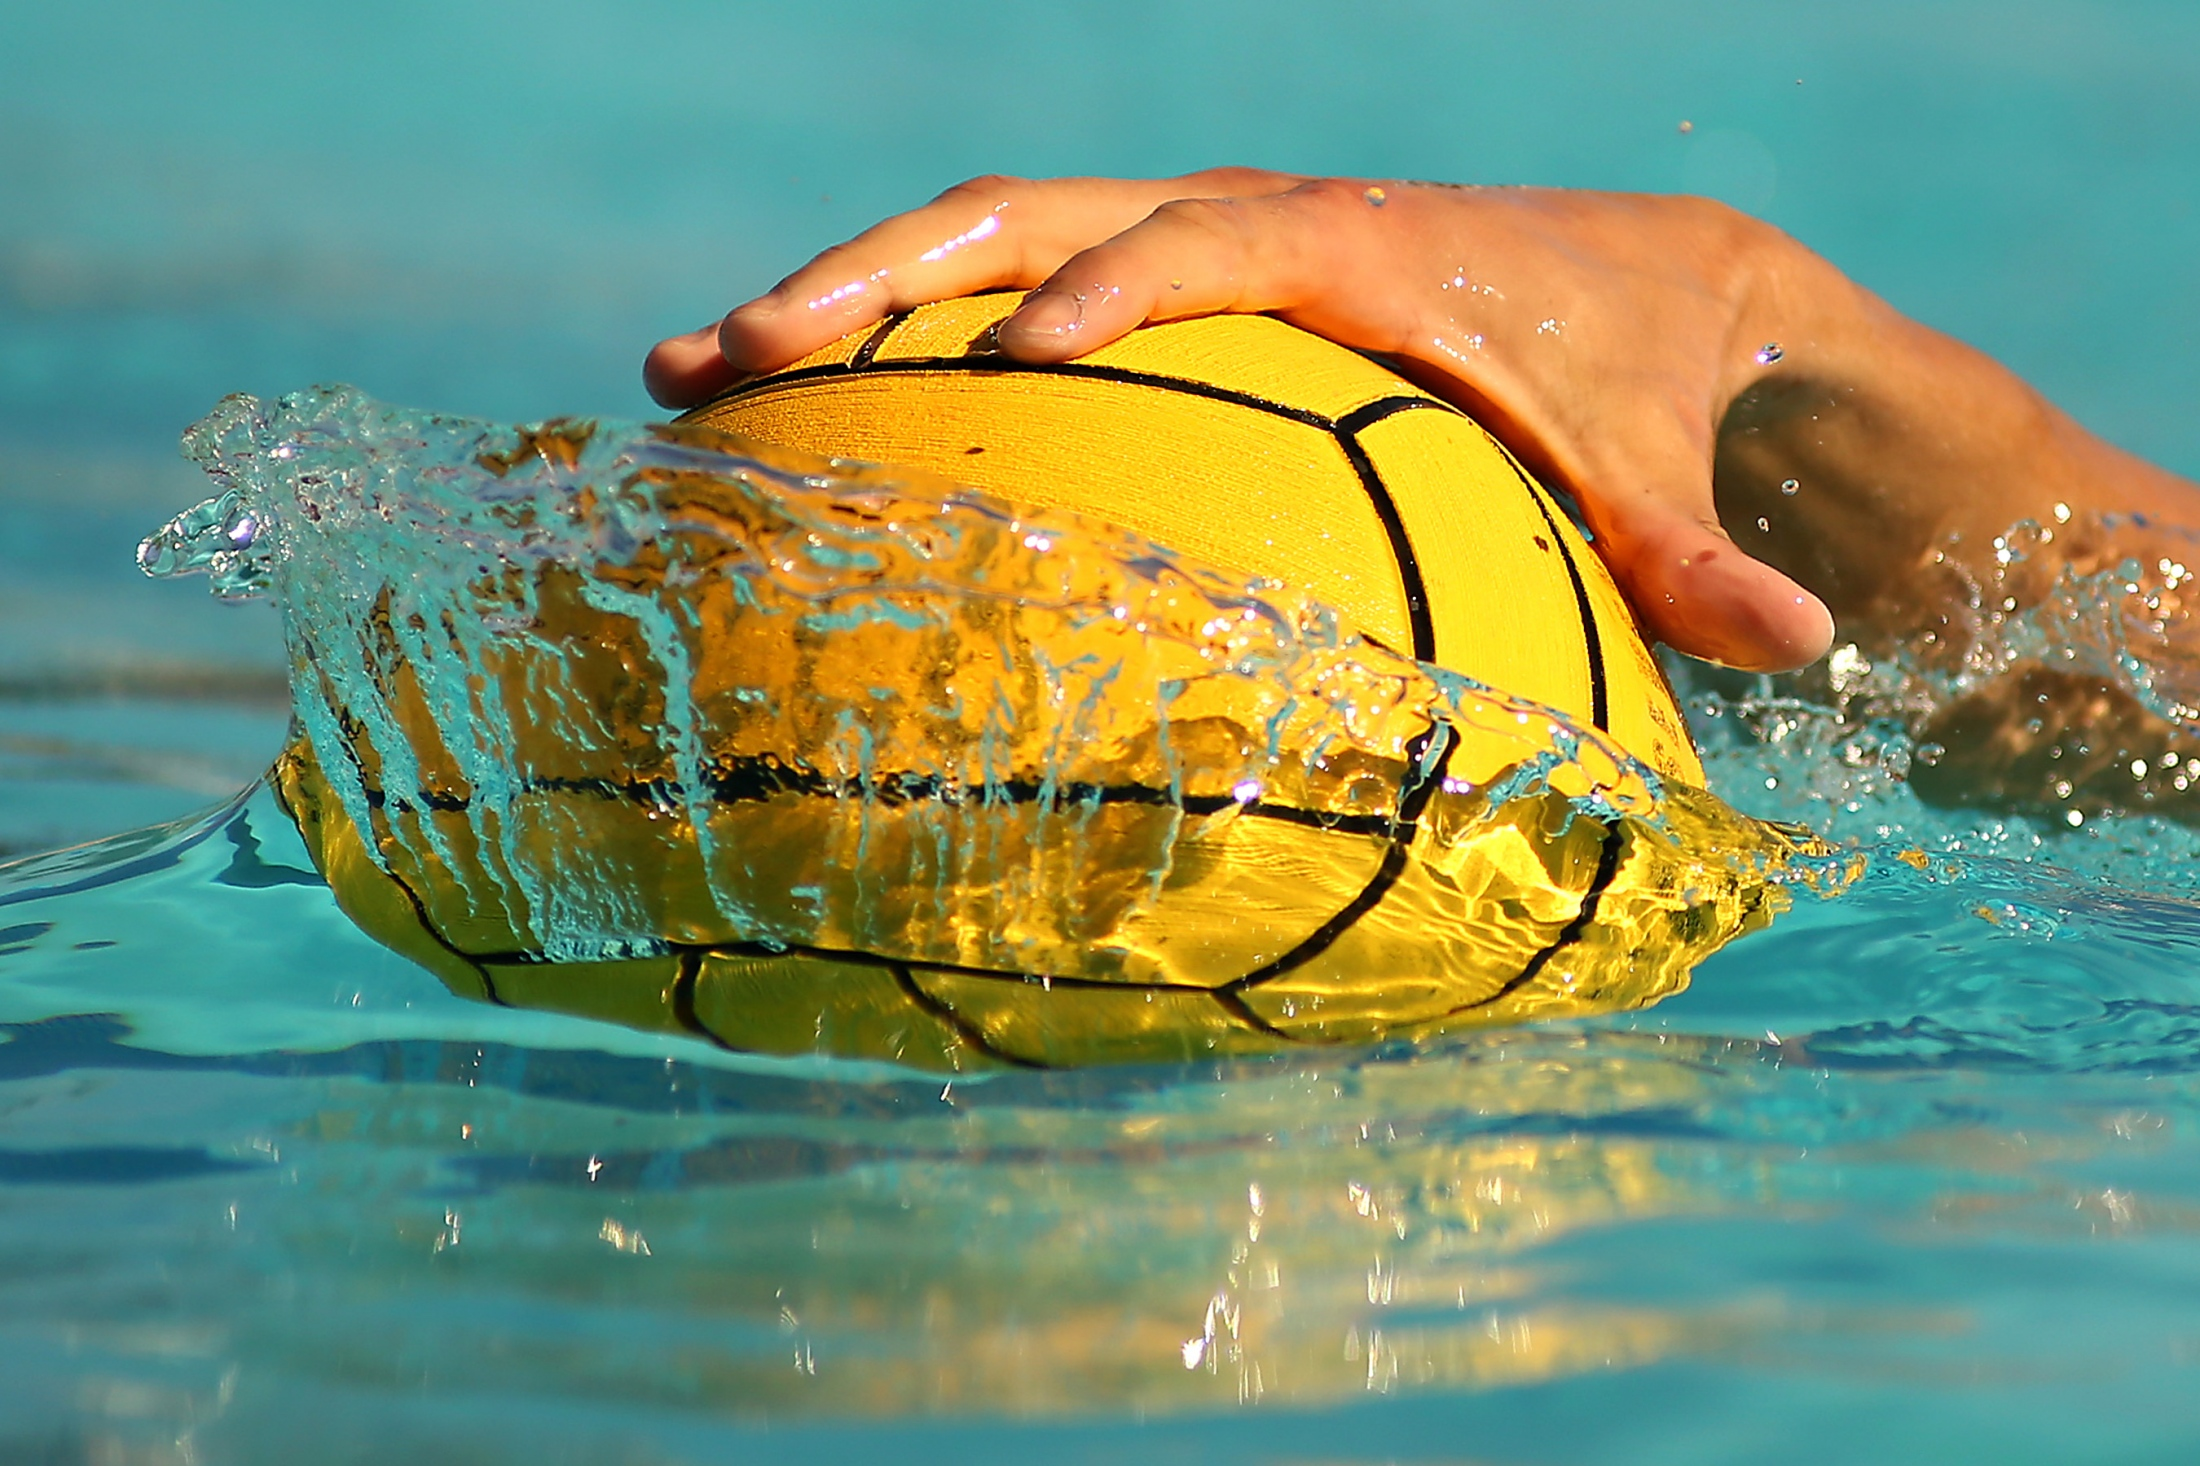 A water polo player stops the ball during a match between Cal Lutheran and Occidental College on Nov. 3, 2018.  ©2018 Katharine Lotze